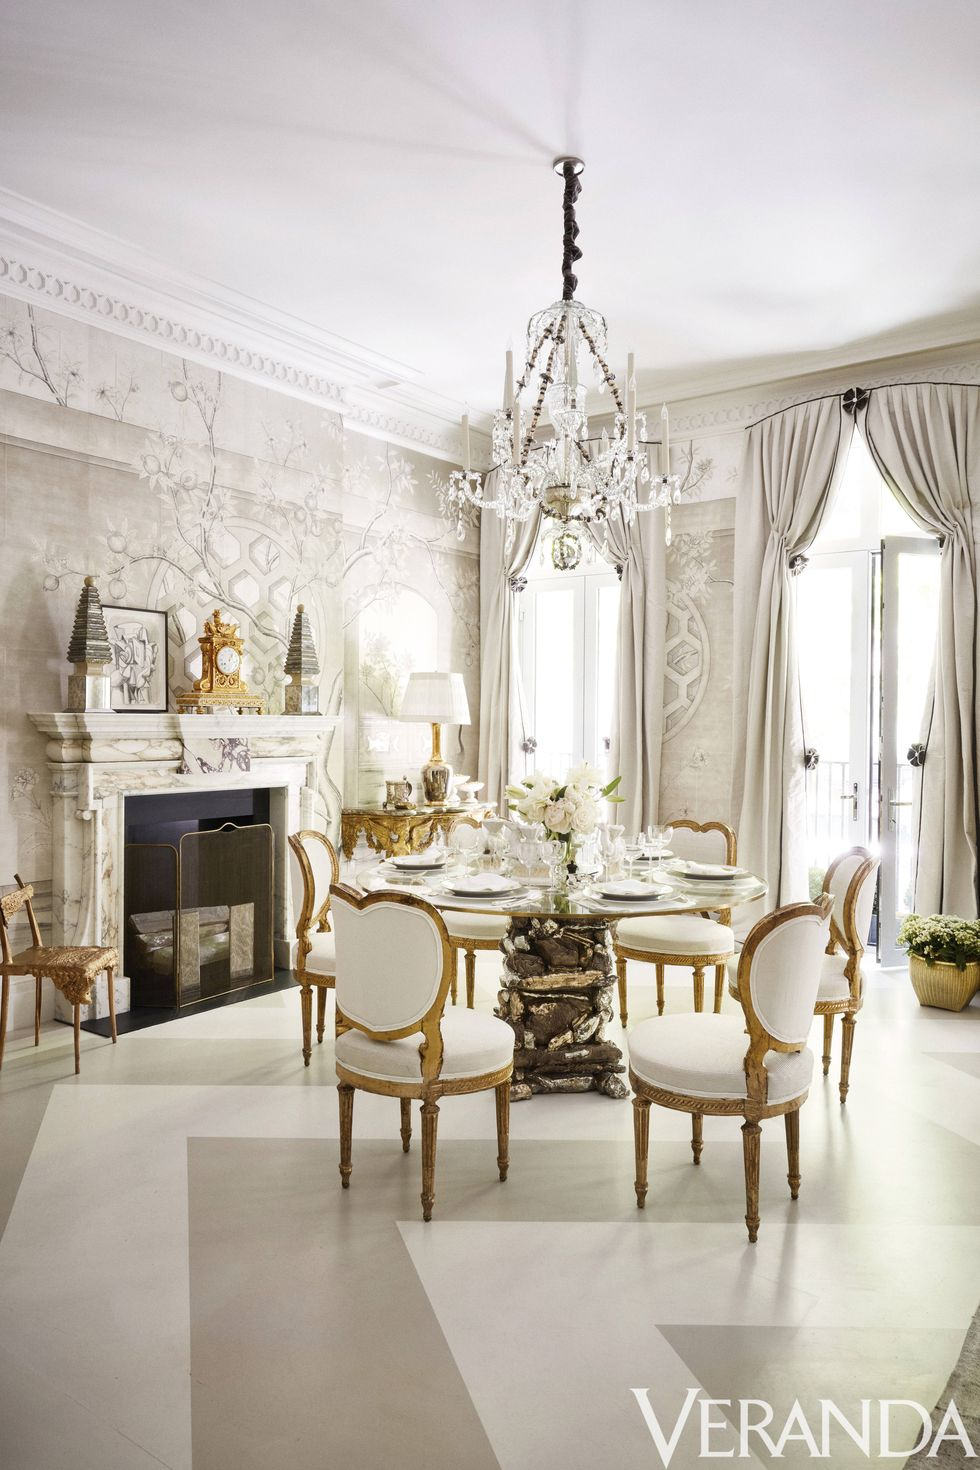 1483485427-ver020117papachristidis08-copy-1